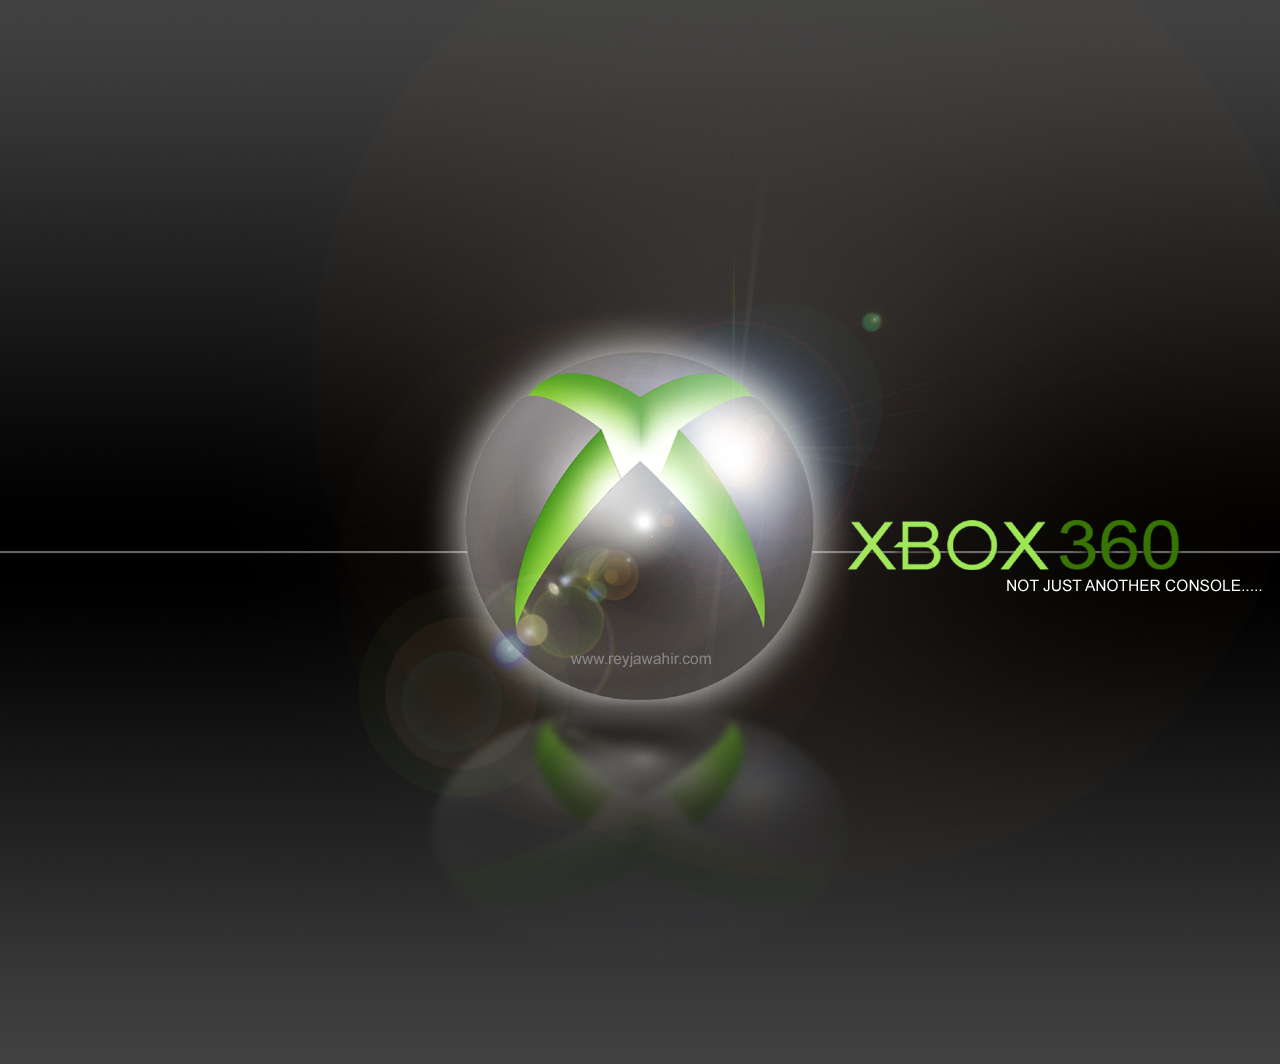 Xbox logo wallpaper wallpapersafari - Xbox one wallpaper ...